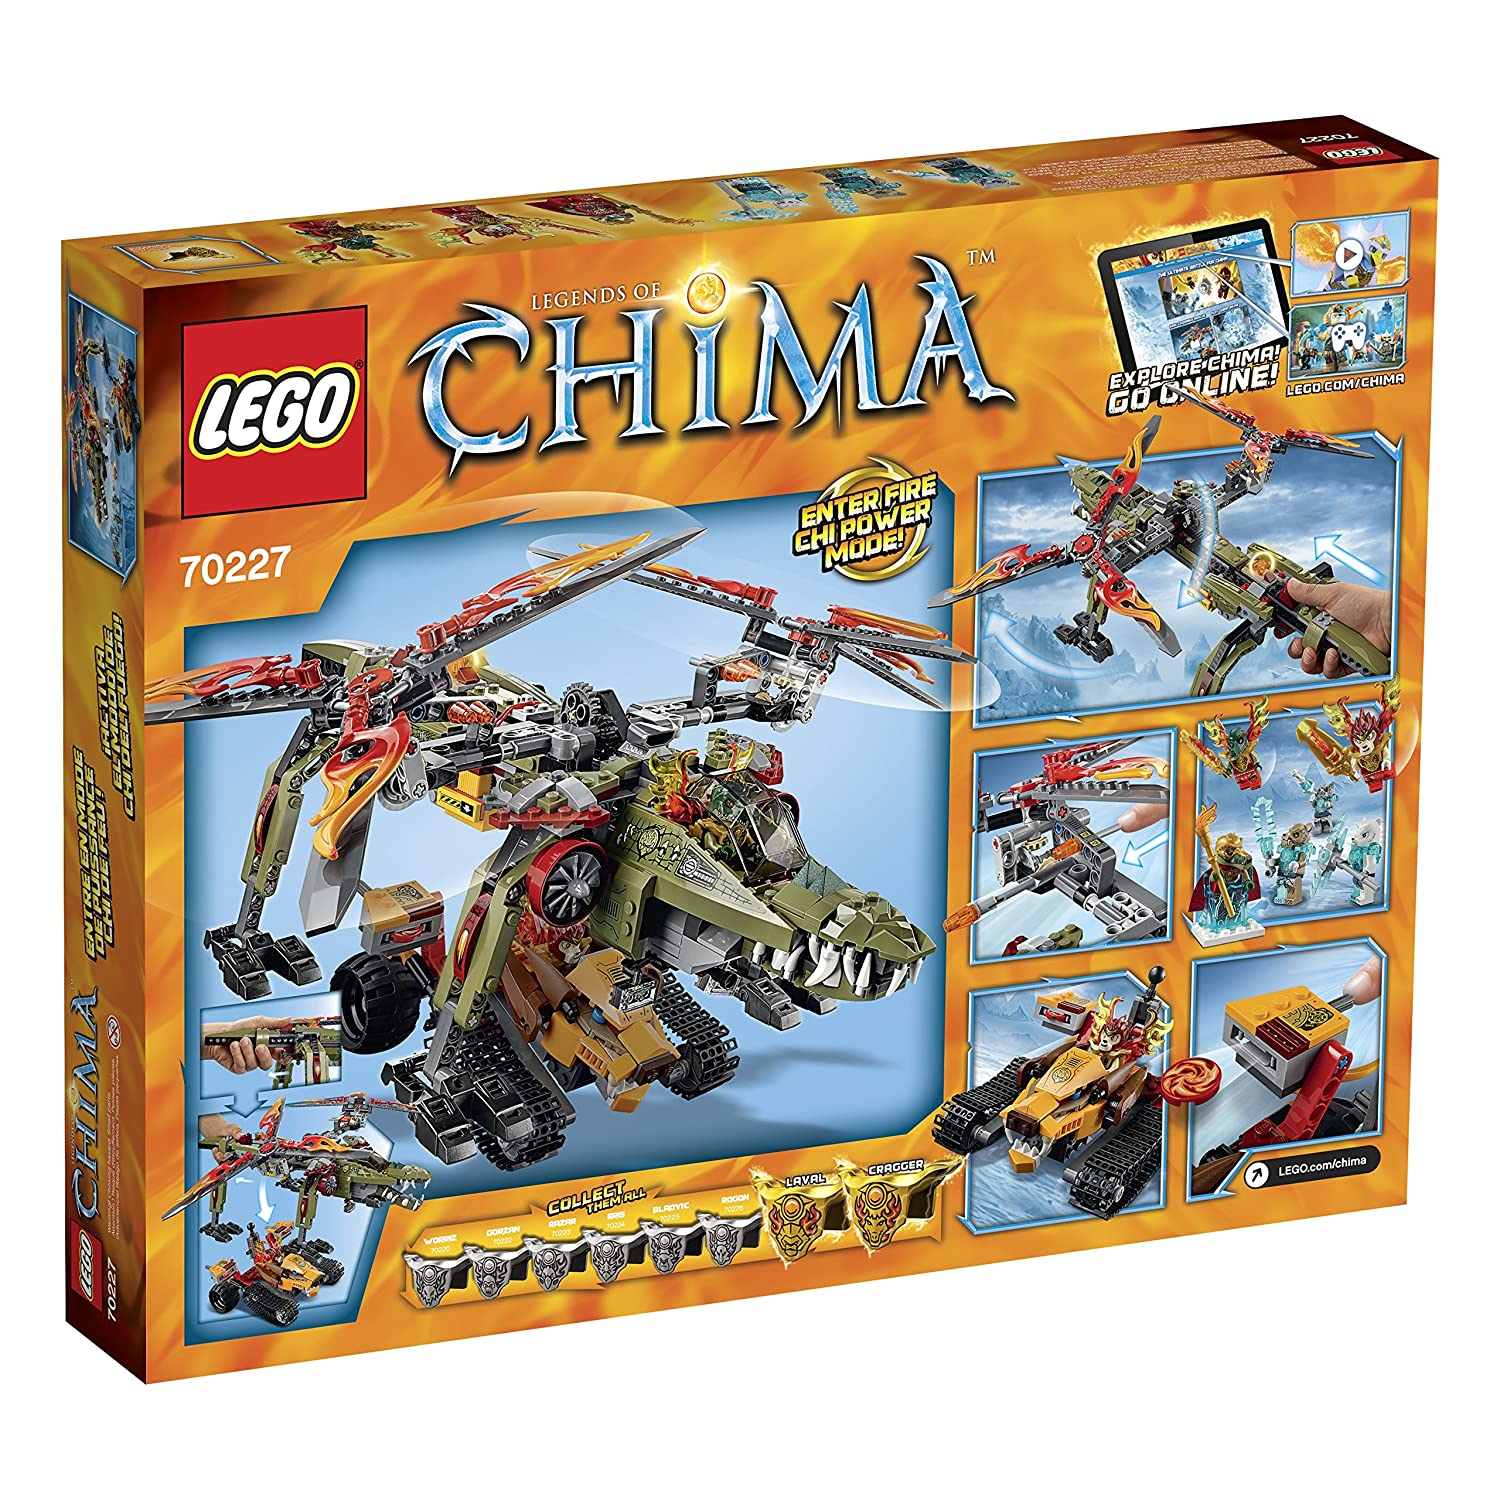 Amazon chima party supplies - Amazon Com Lego Legends Of Chima 70227 King Crominus Rescue Building Kit Toys Games